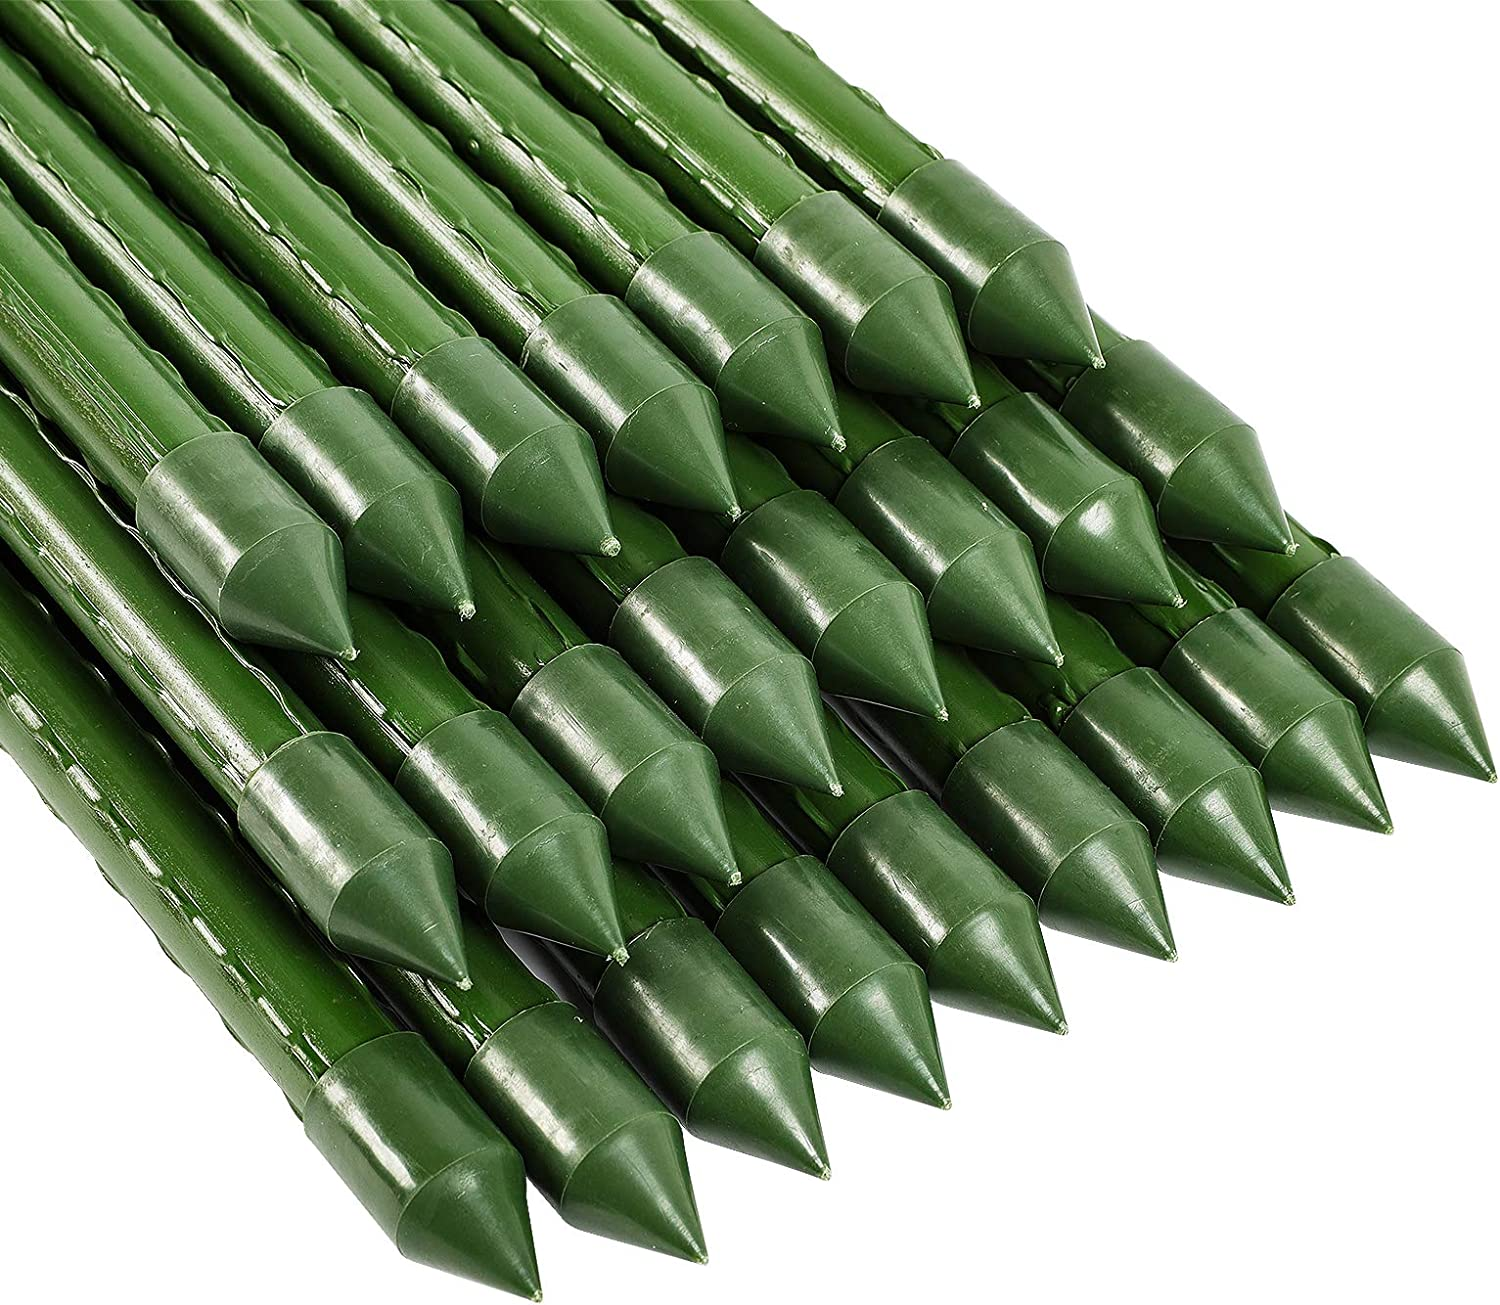 FEED GARDEN Garden Stakes 72 Inch 6ft 25 Pack,Sturdy Plant Metal Sticks Support,Plastic Coated Plant Stakes,Tomato Stakes,Beans,Trees